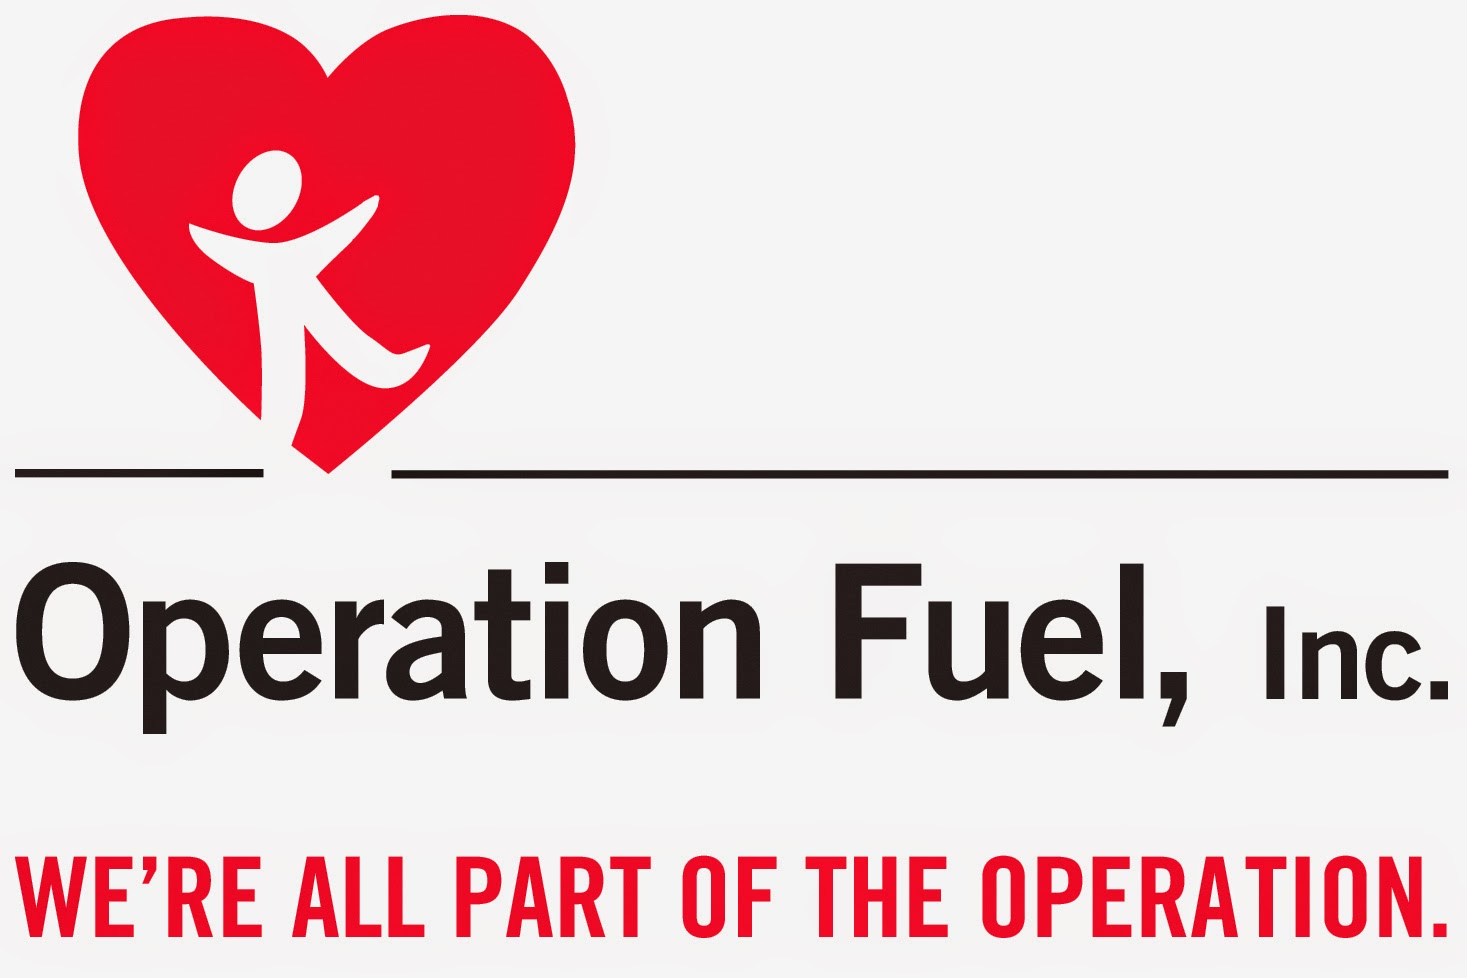 According To A Release, Competitive Resources Inc. Of Wallingford Will  Donate $25 To Operation Fuel Each Time A Customer Of Connecticut Light And  Power ...